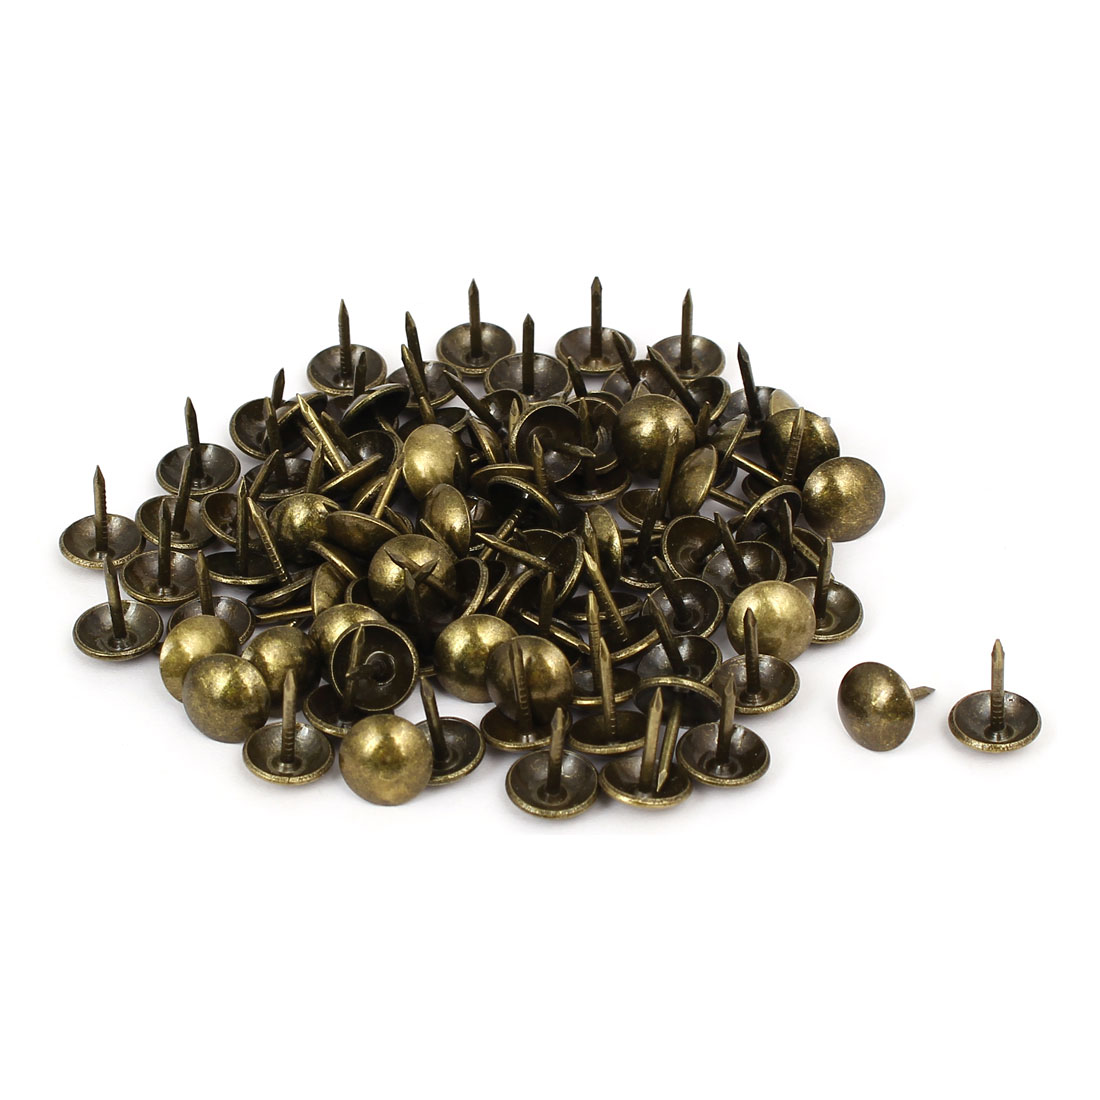 Leather Sofa Round Head Upholstery Tack Nail Bronze Tone 10mm x 13mm 100pcs